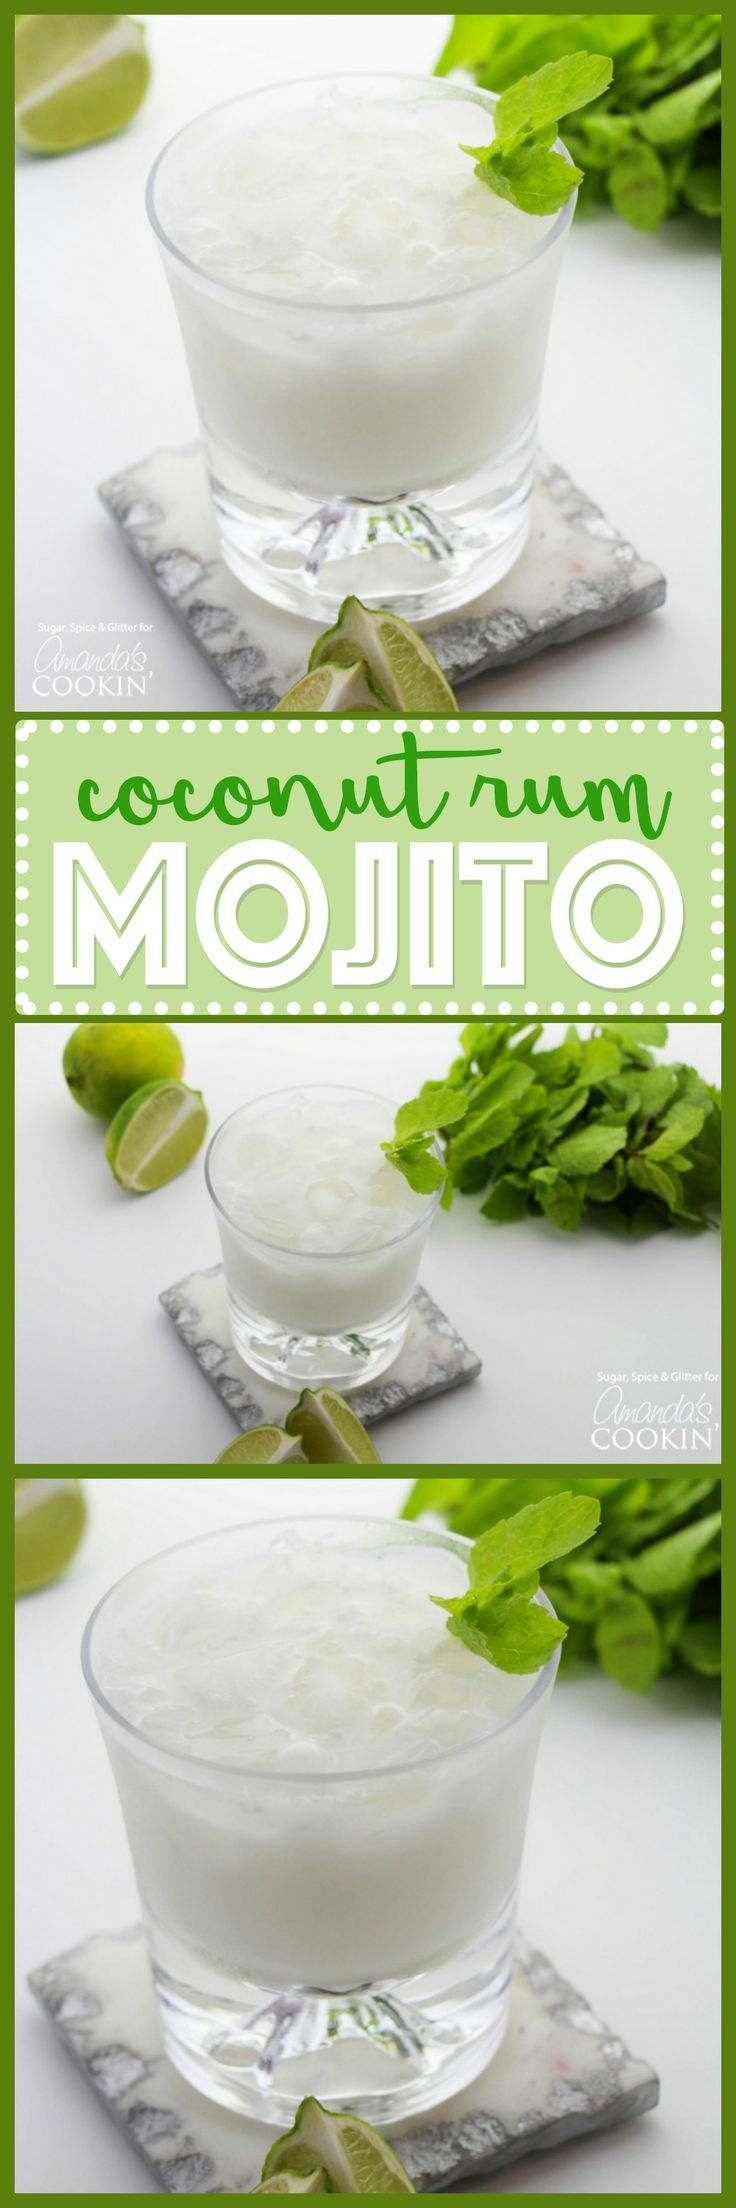 Coconut Rum Mojitos: Refreshing, cooling mint and coconut lime are combined making a classic summer flavor. Oh so tropical and satisfying!